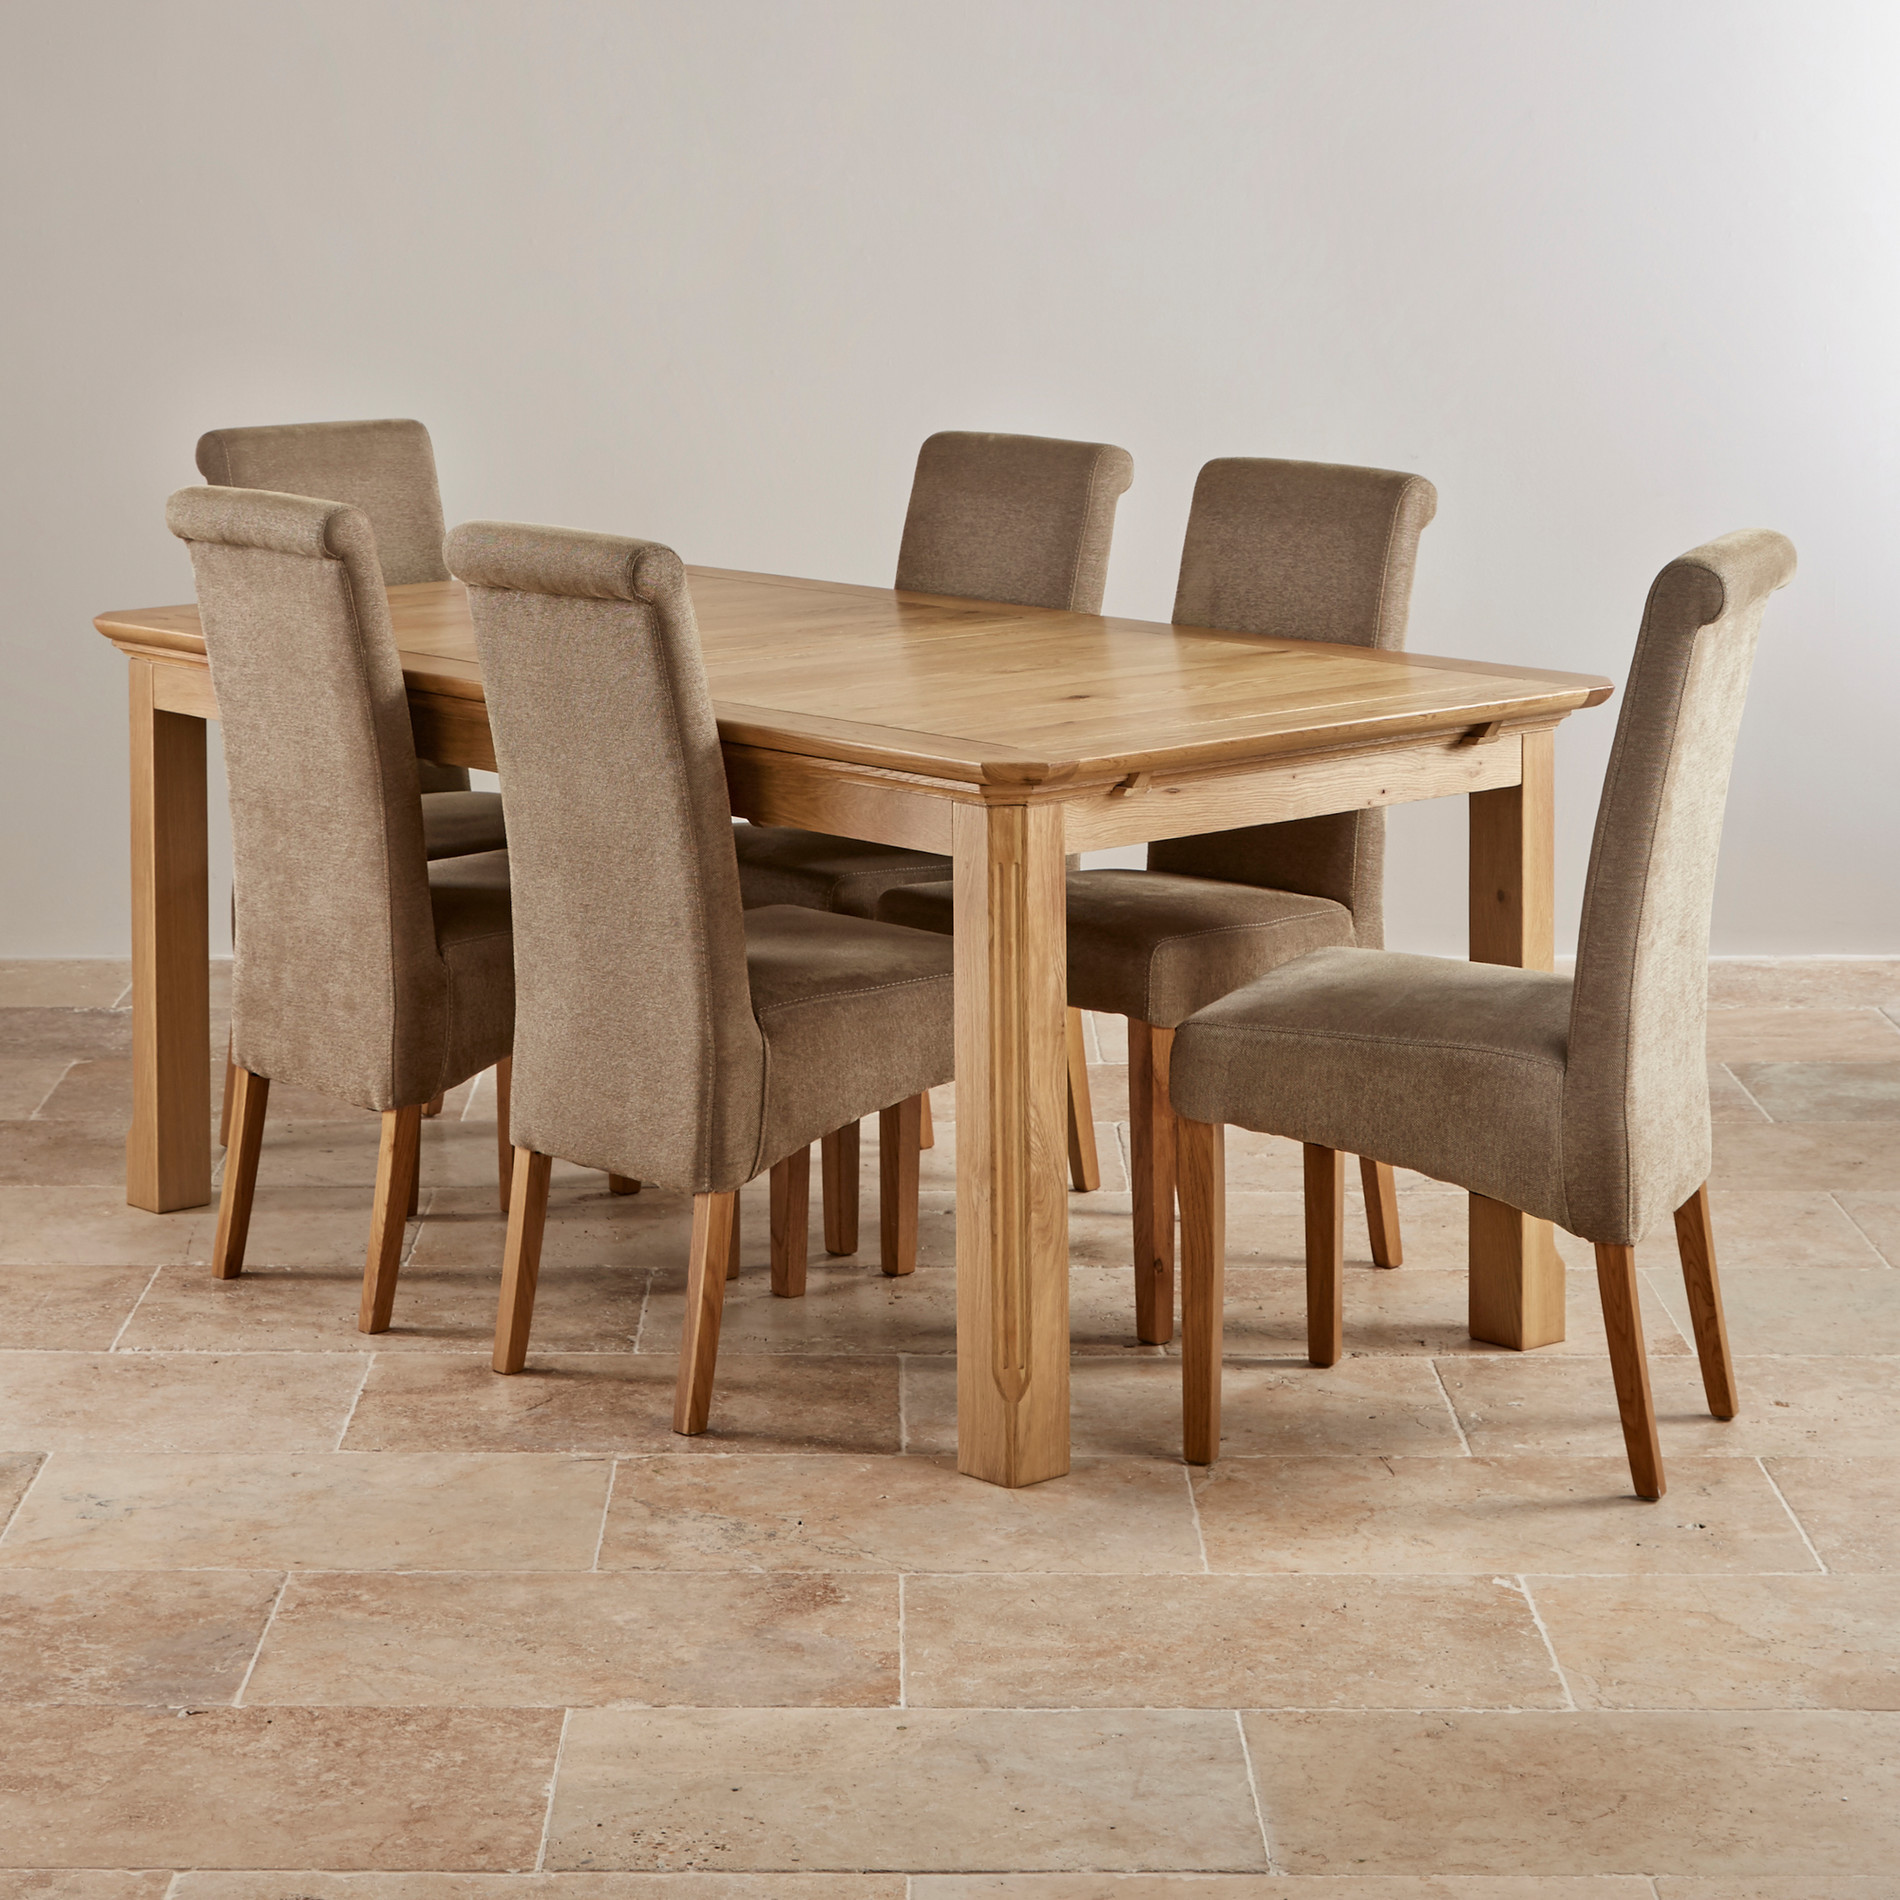 Best ideas about Dining Table Sets . Save or Pin Edinburgh Natural Solid Oak Dining Set 6ft Extending Now.